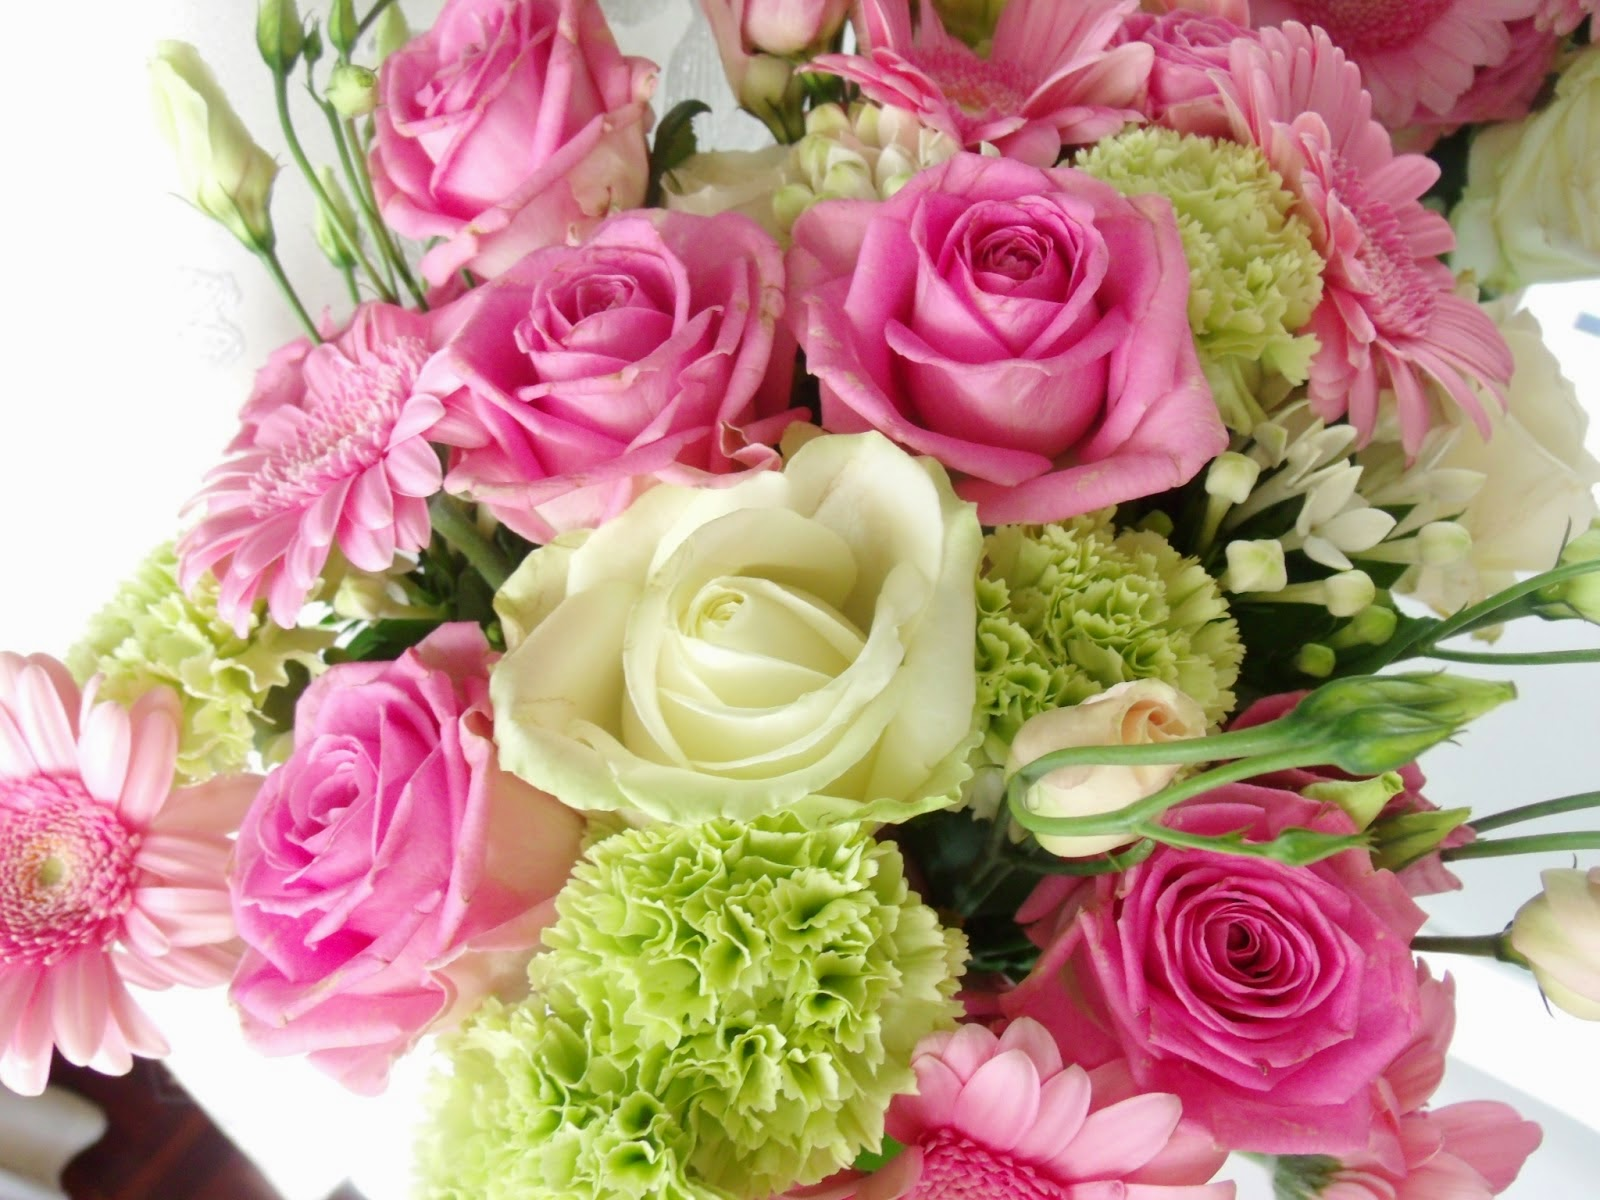 Birthday flowers wallpapers downloads happy birthday flowers wallpapers downloads izmirmasajfo Choice Image